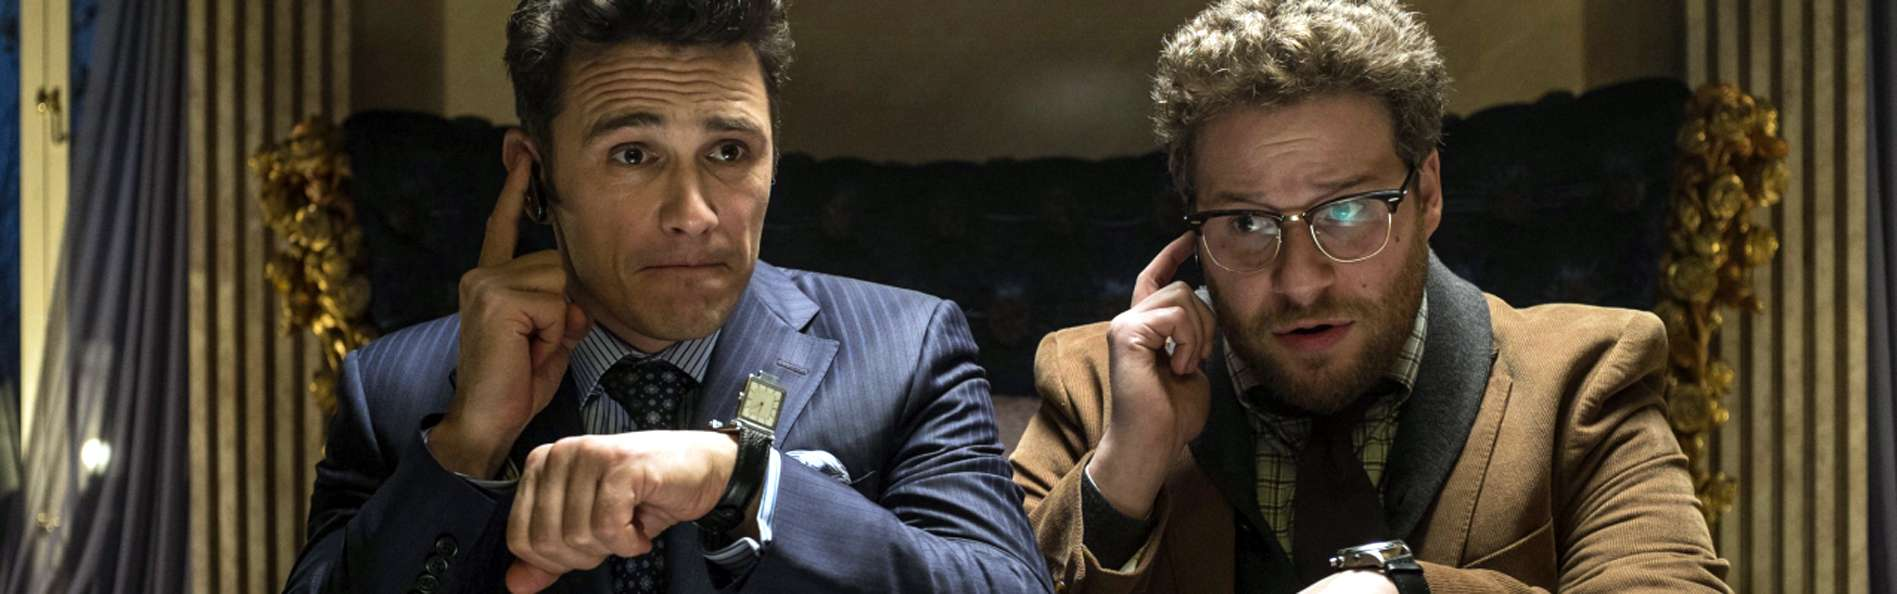 'The Interview'. Foto: Sony Pictures